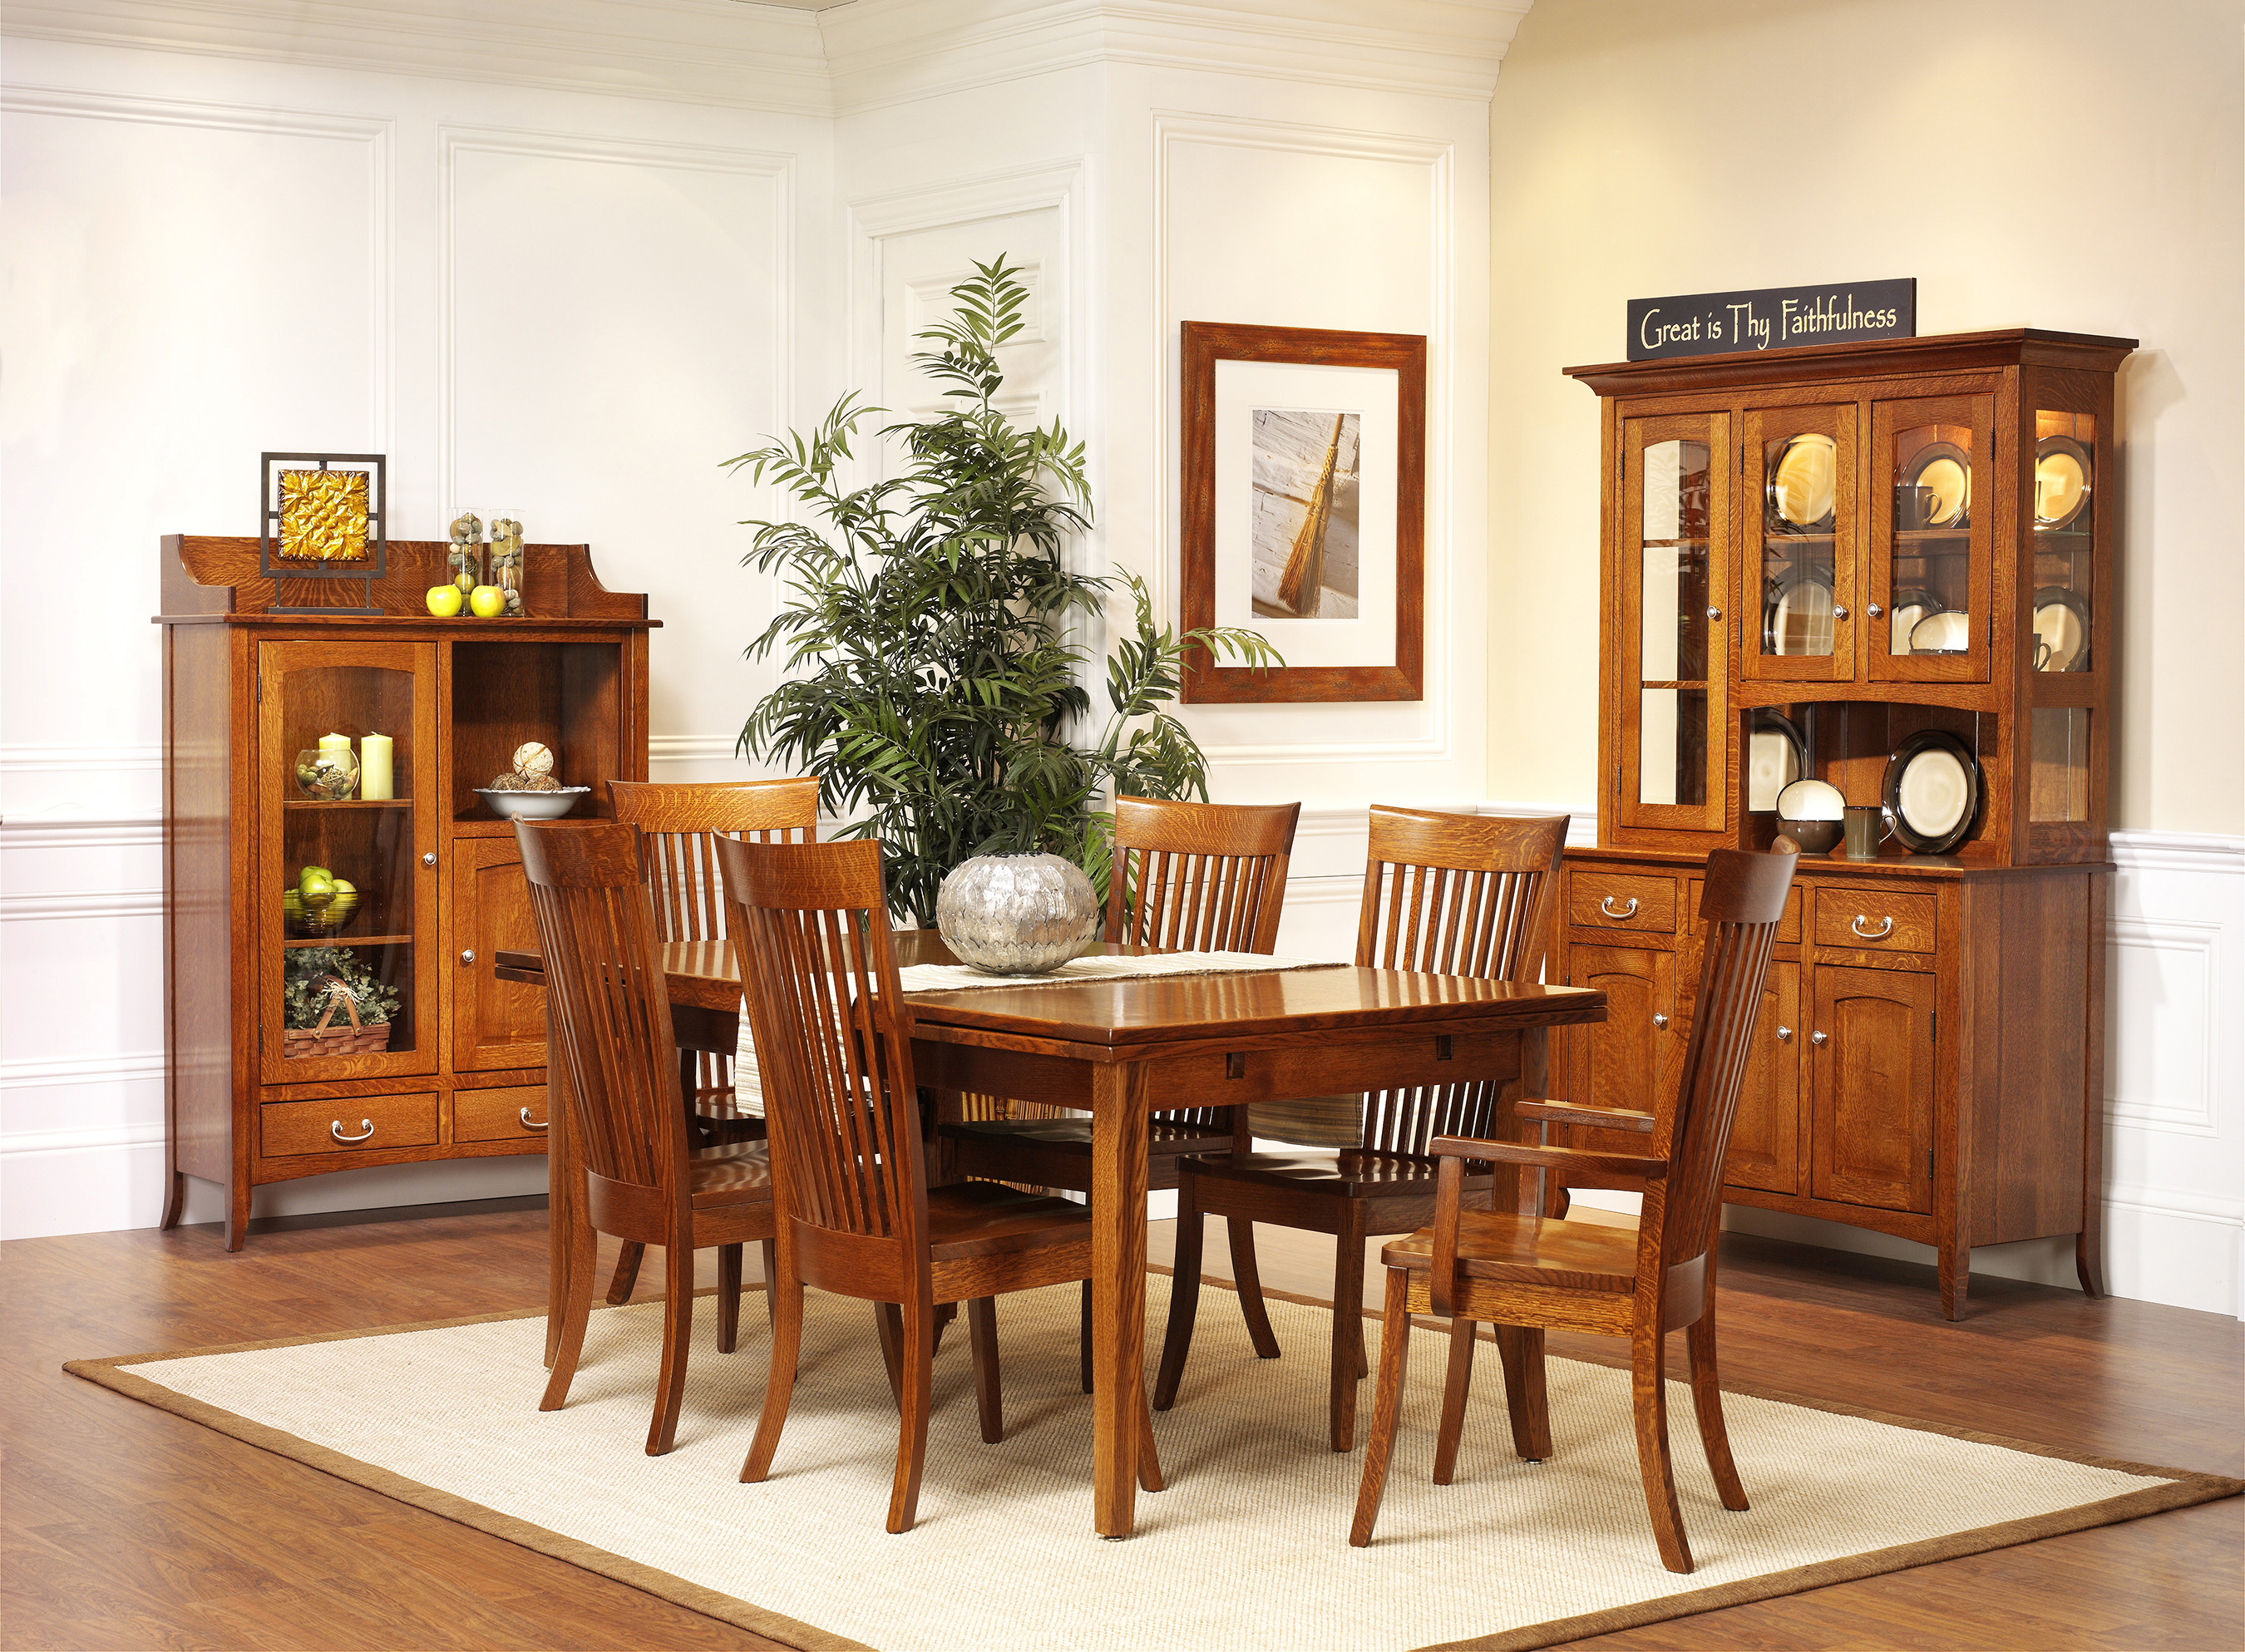 the amish gallery dining room. Black Bedroom Furniture Sets. Home Design Ideas